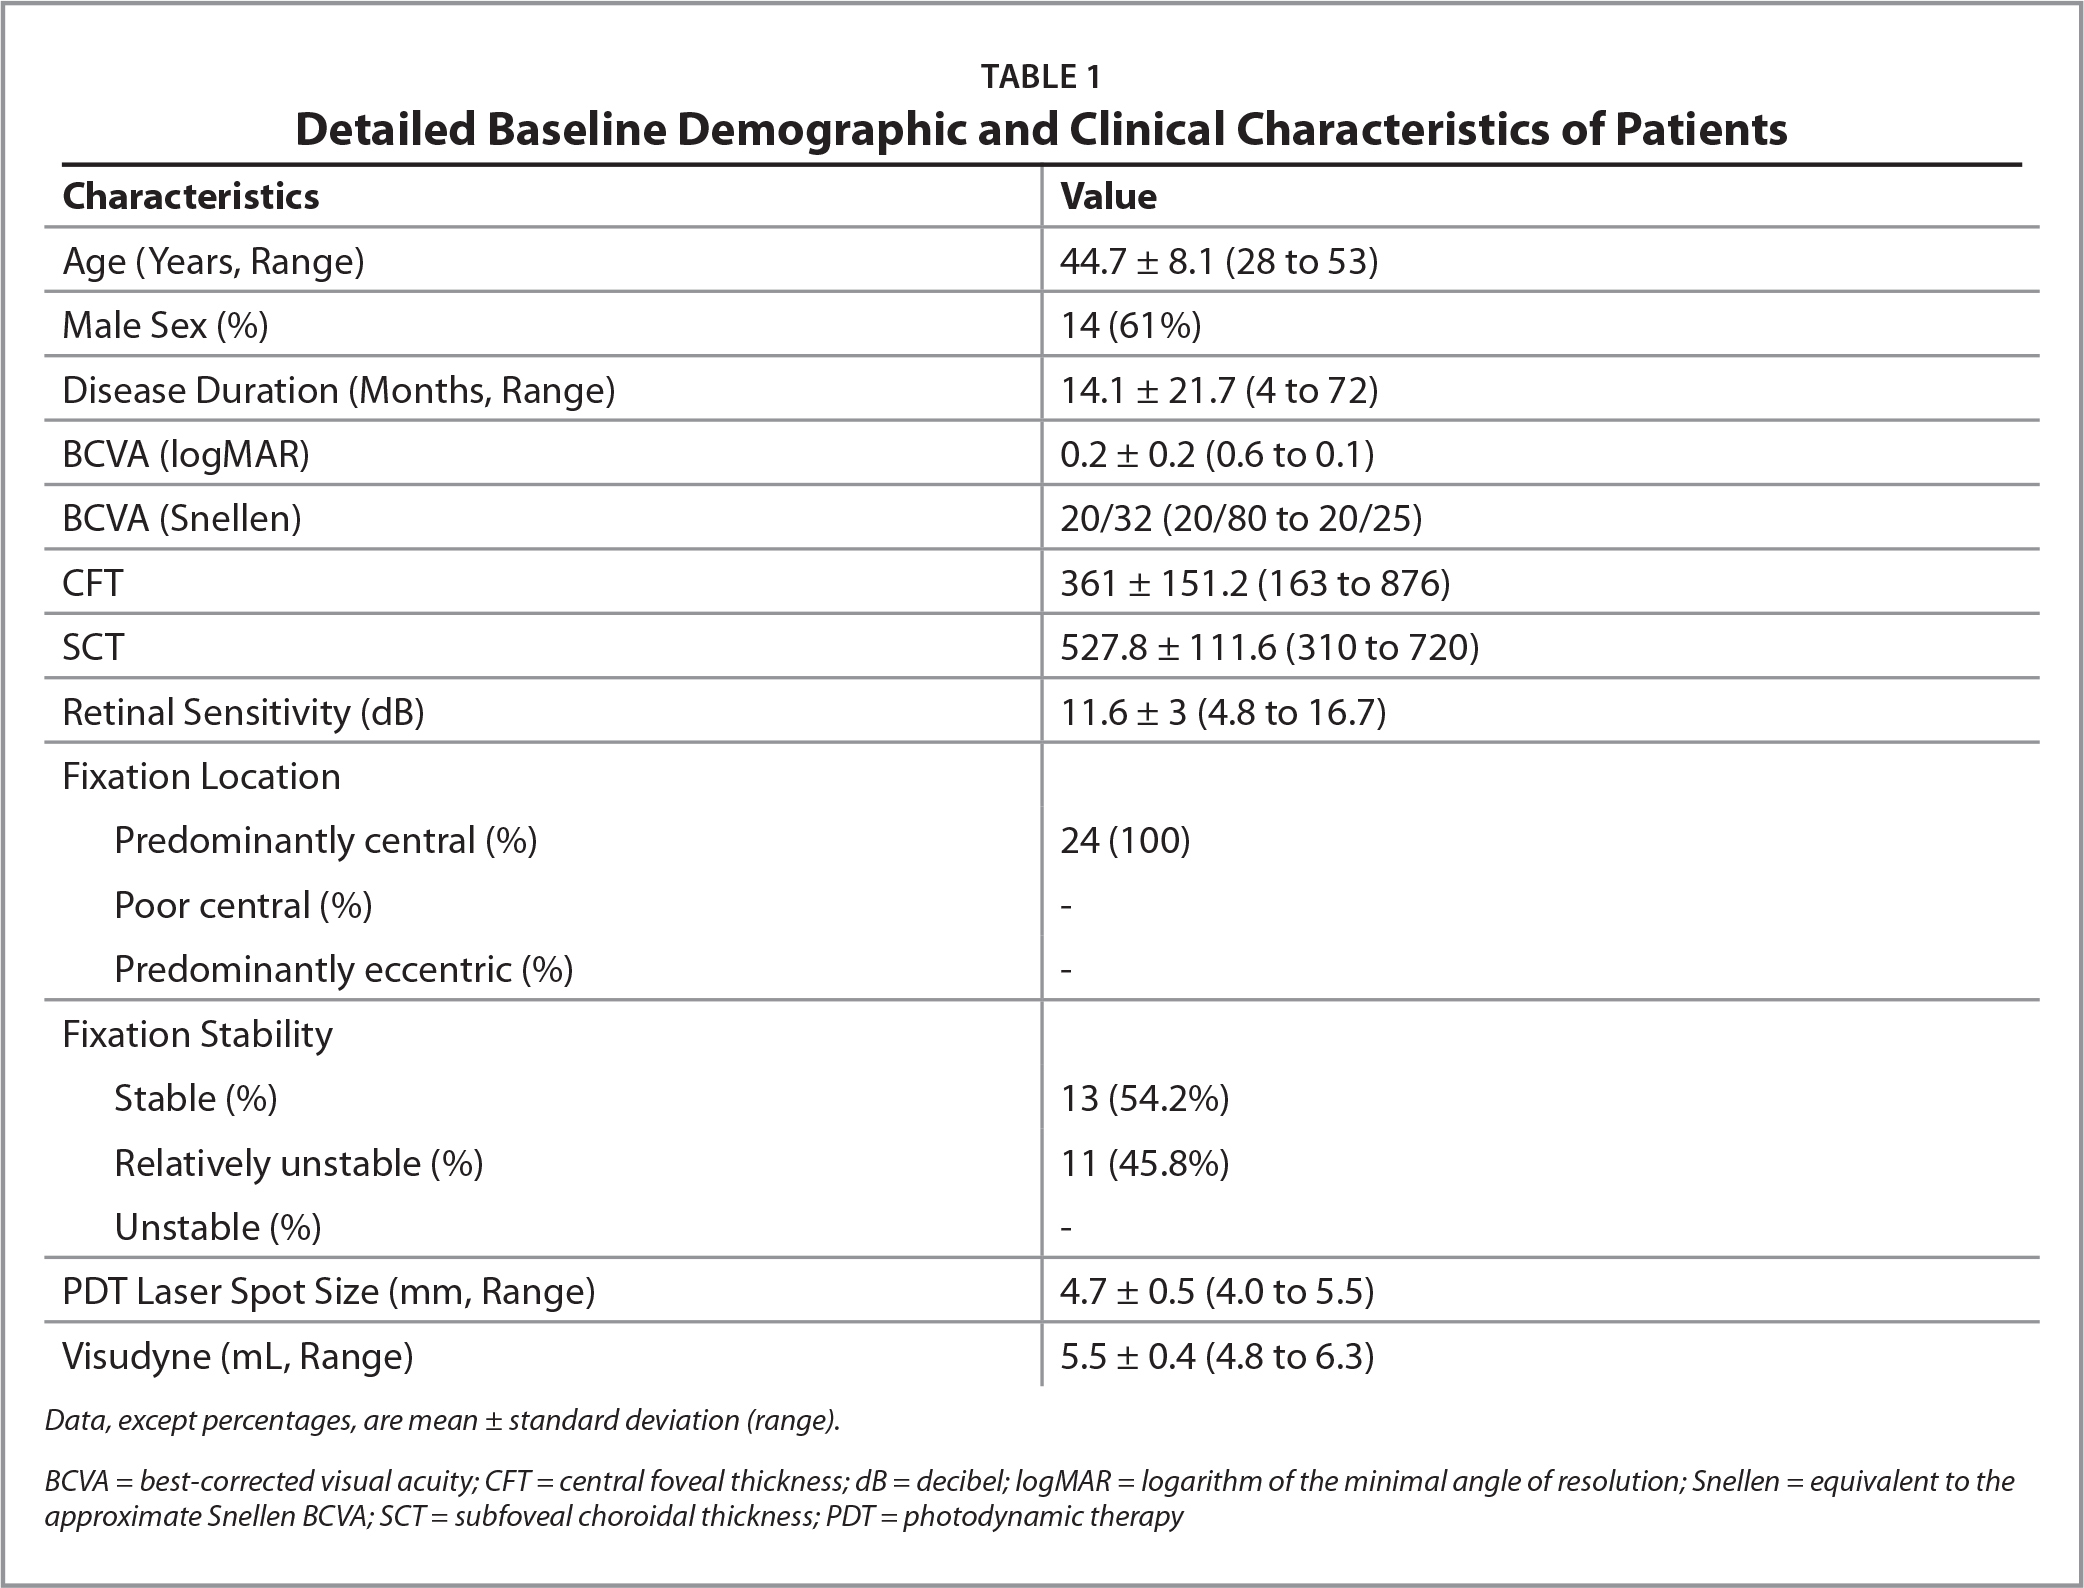 Detailed Baseline Demographic and Clinical Characteristics of Patients